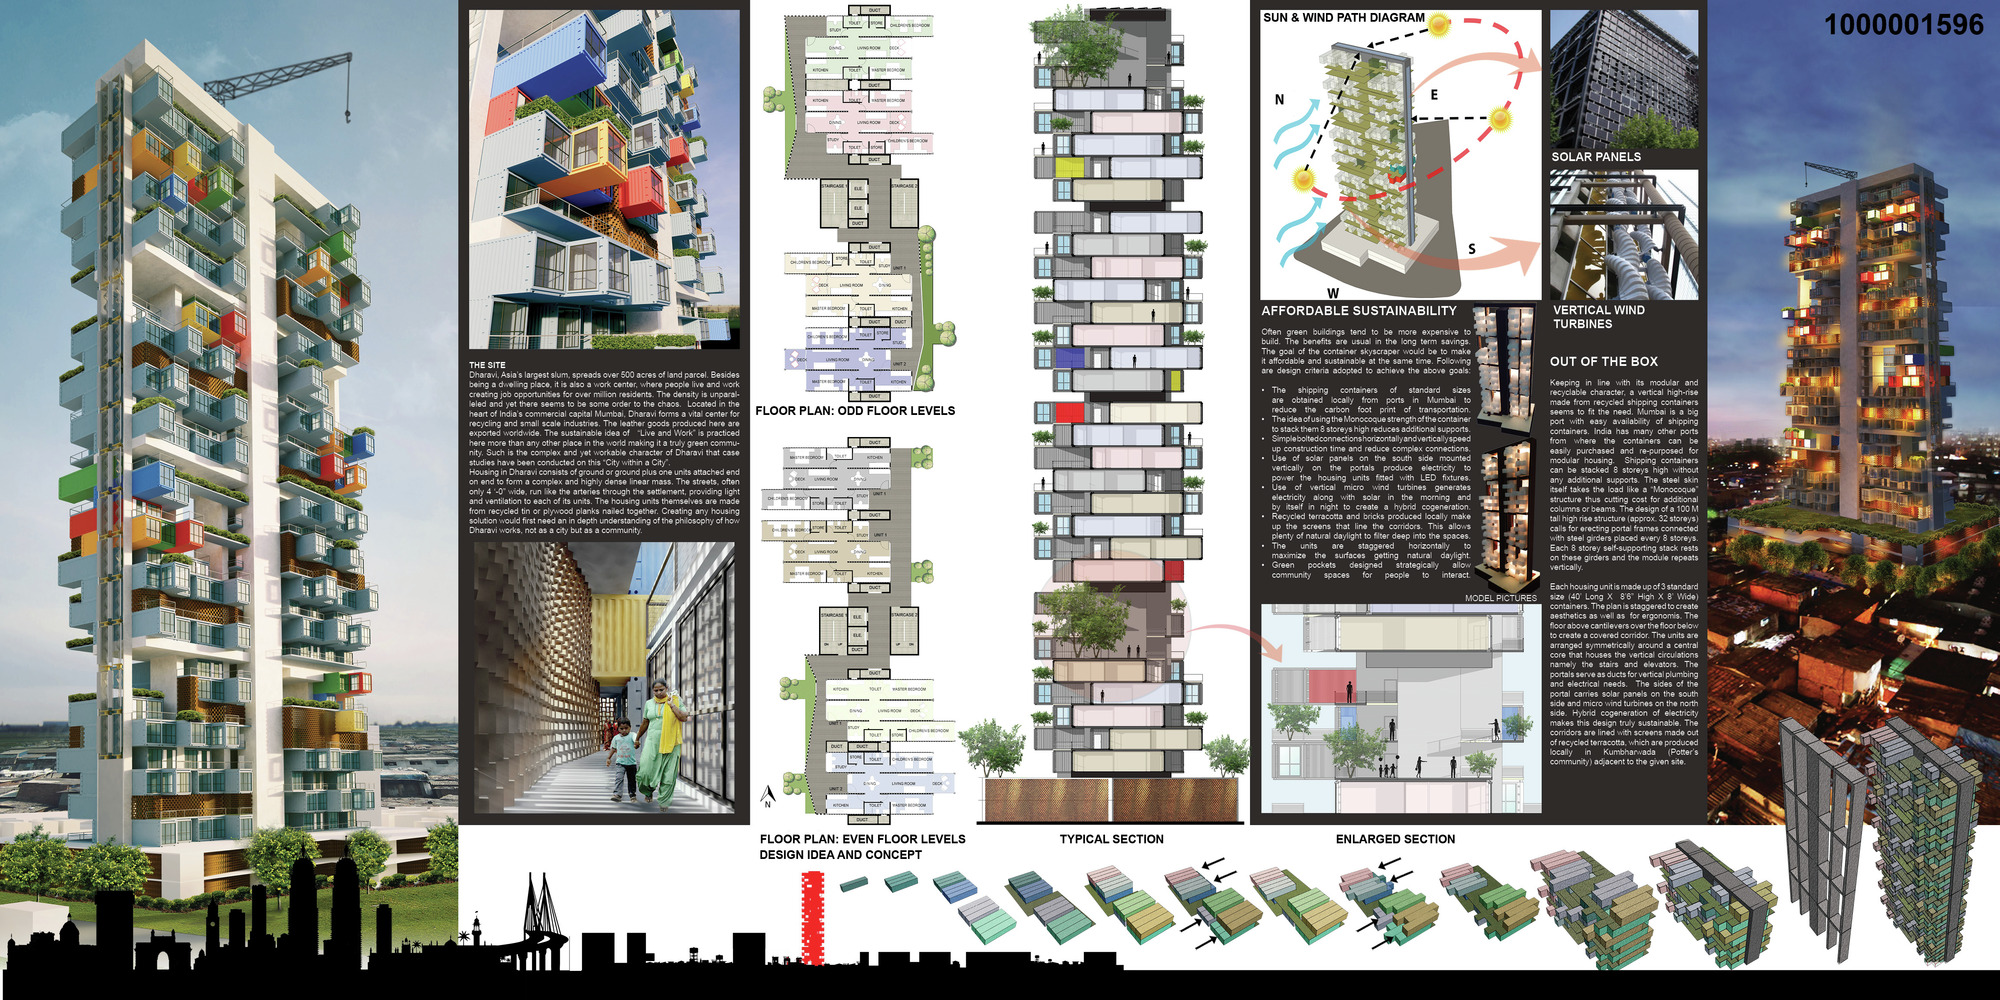 Shipping Container Floor Plan Designs Gallery Of Ga Designs Radical Shipping Container